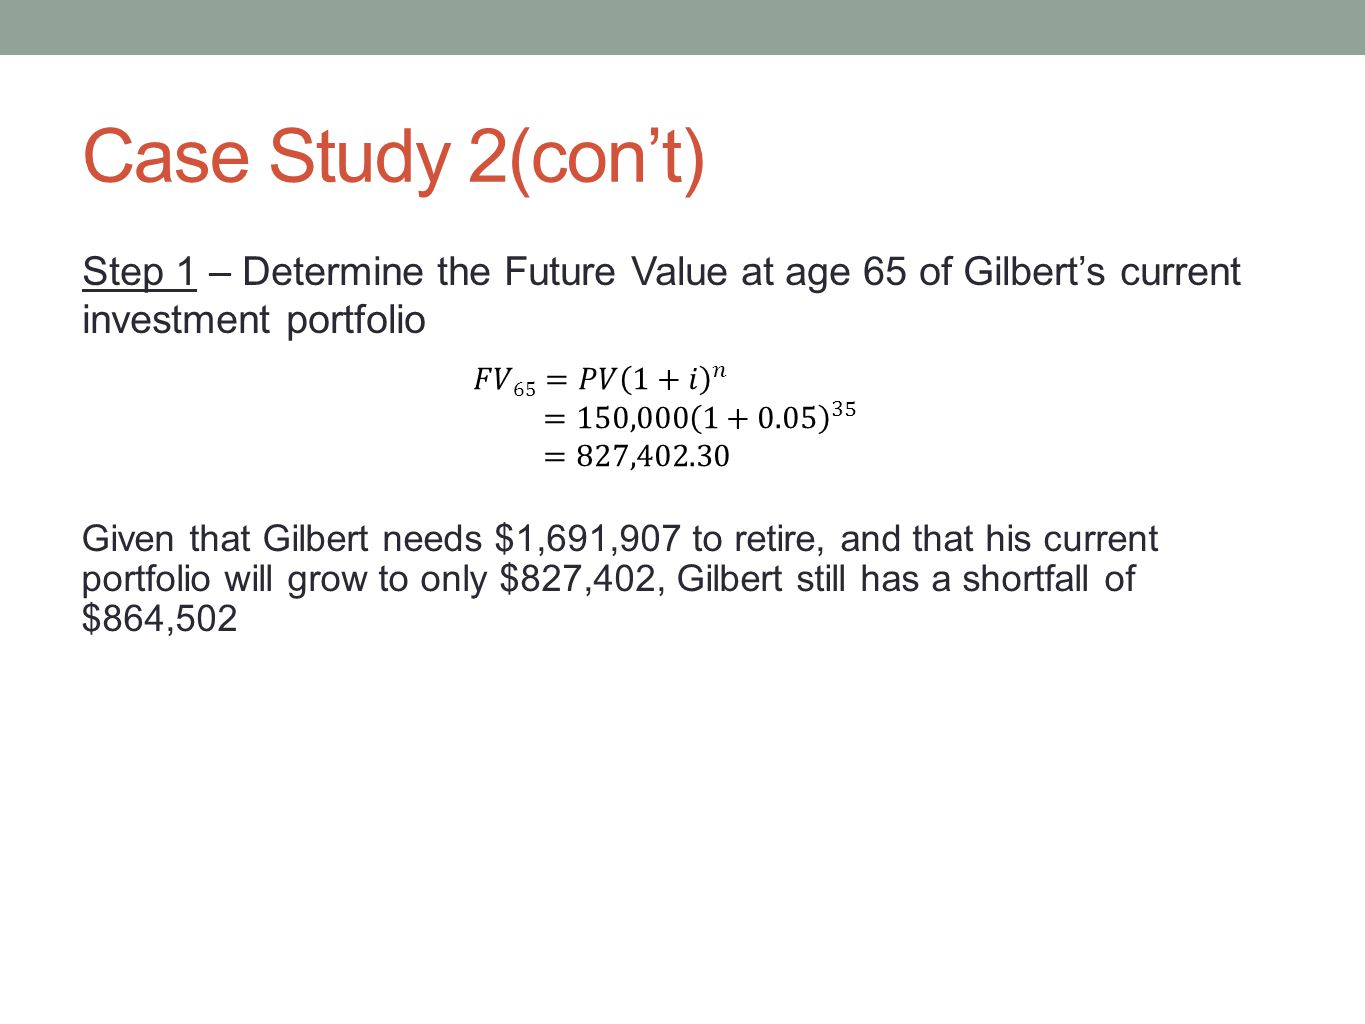 Case Study 2(con't) Step 1 – Determine the Future Value at age 65 of Gilbert's current investment portfolio.